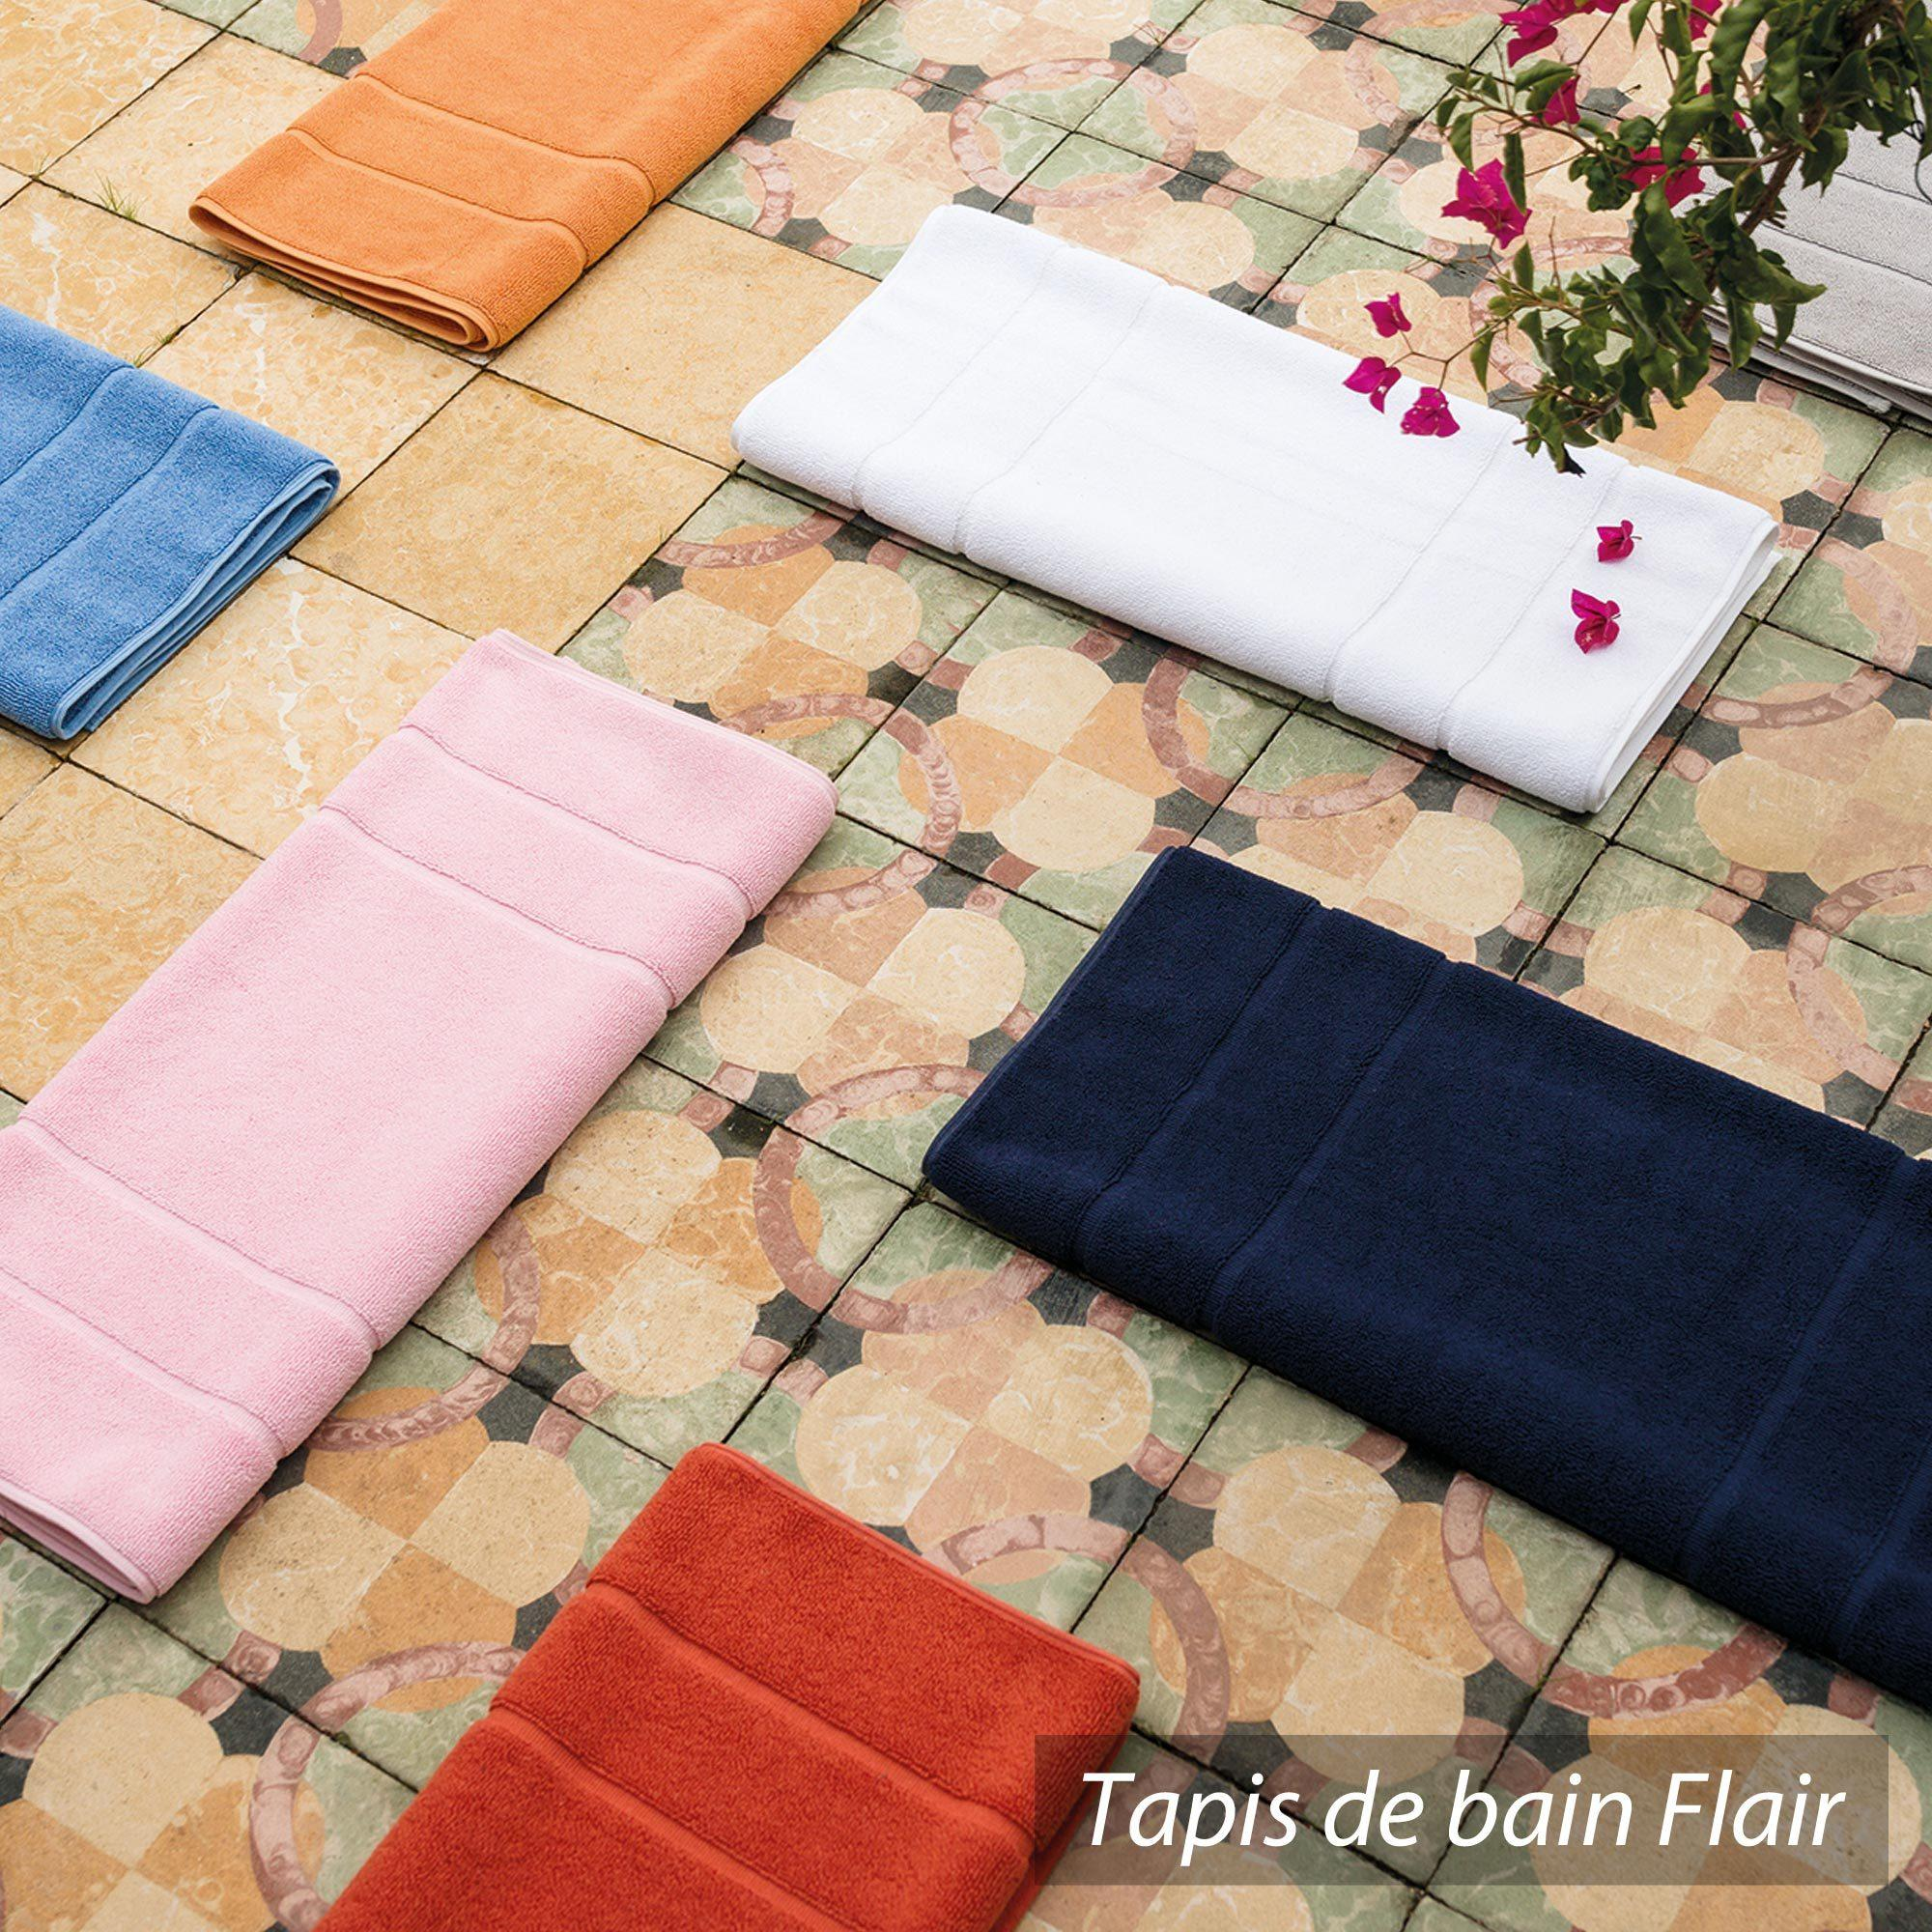 tapis de bain 60x100 flair sable 1500g m2 ebay. Black Bedroom Furniture Sets. Home Design Ideas